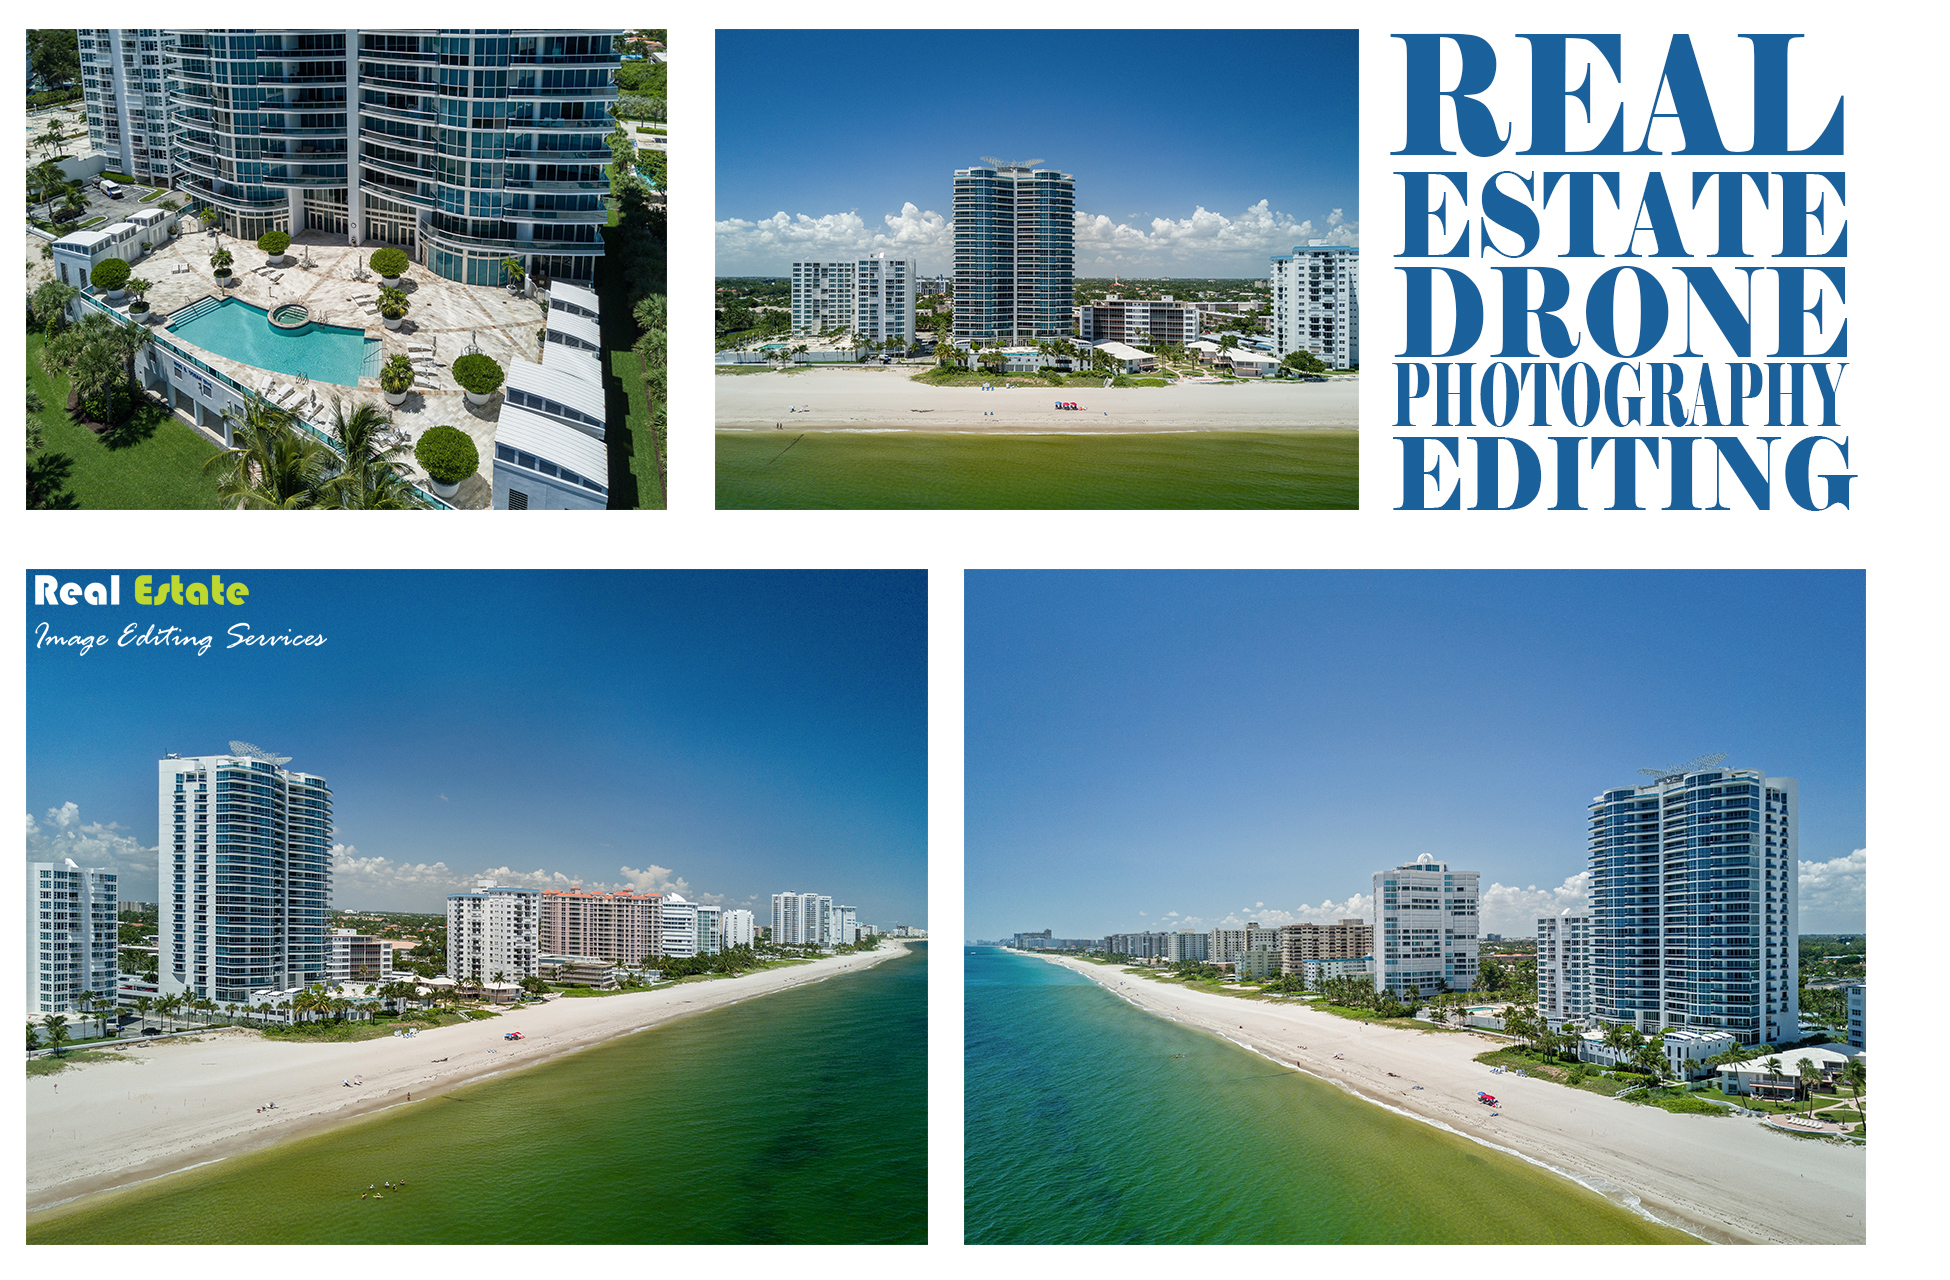 Real Estate Drone Photography Editing